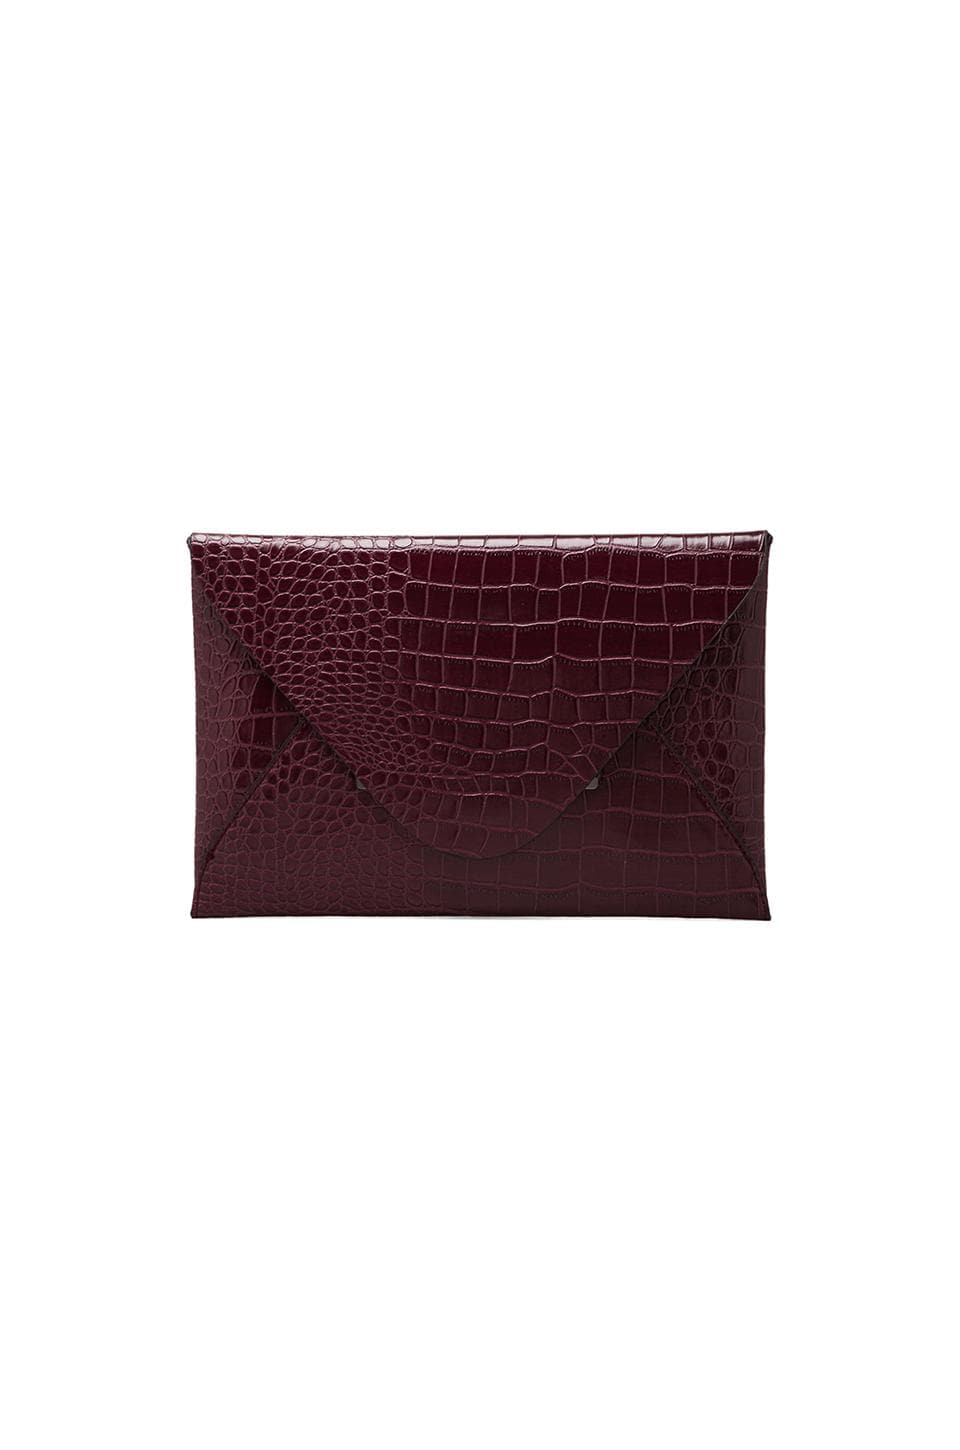 BCBGMAXAZRIA Croco Envelope in Burgundy